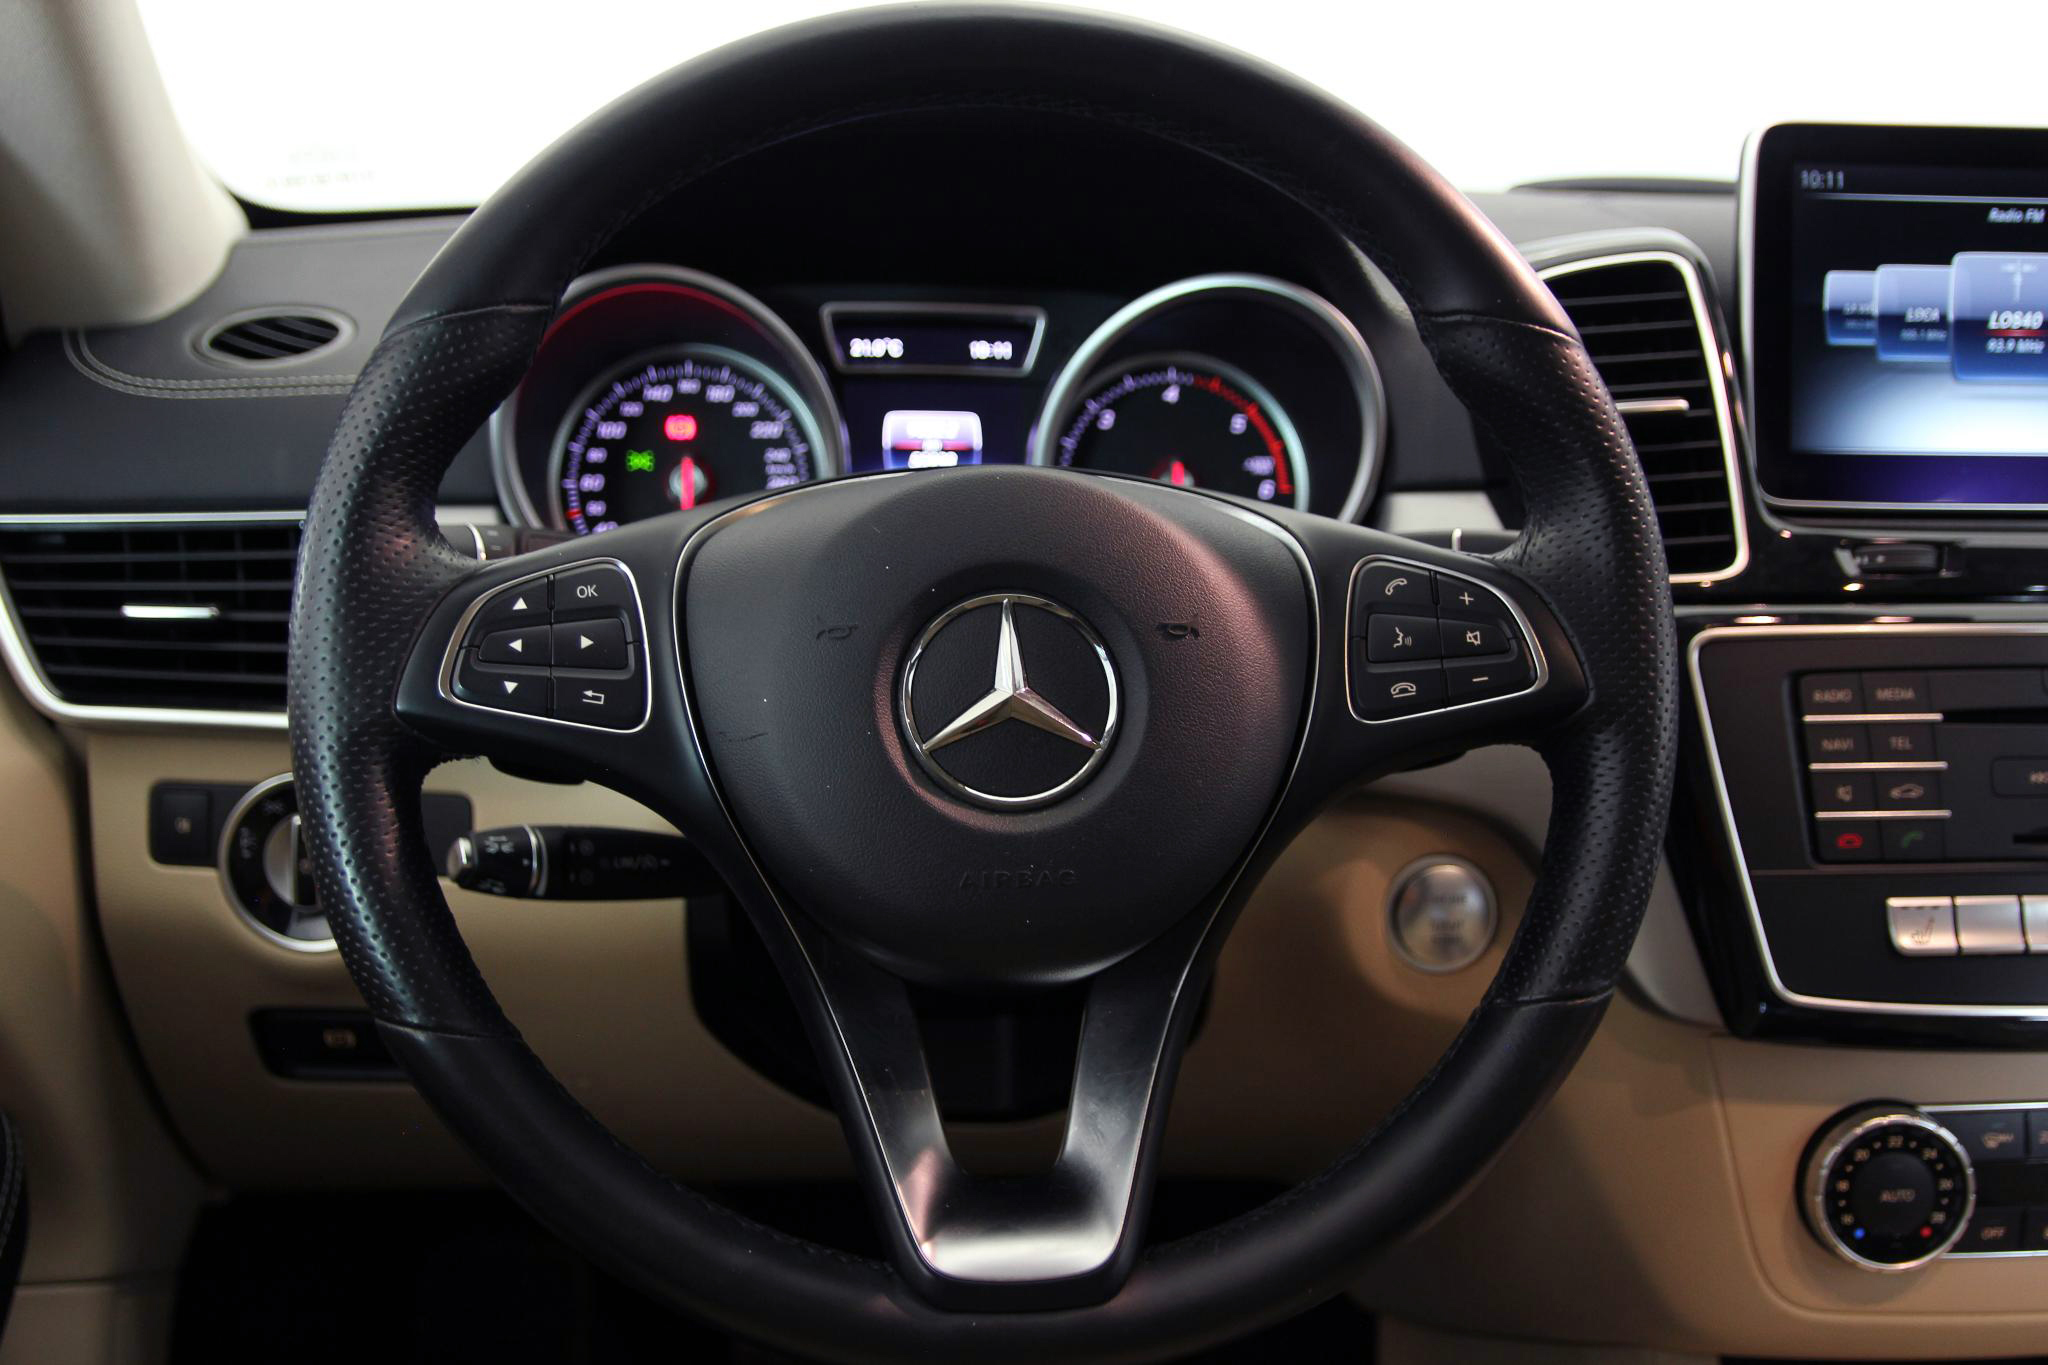 Mercedes-Benz Clase GLE GLE COUPE 350 D 4MATIC imagen 26